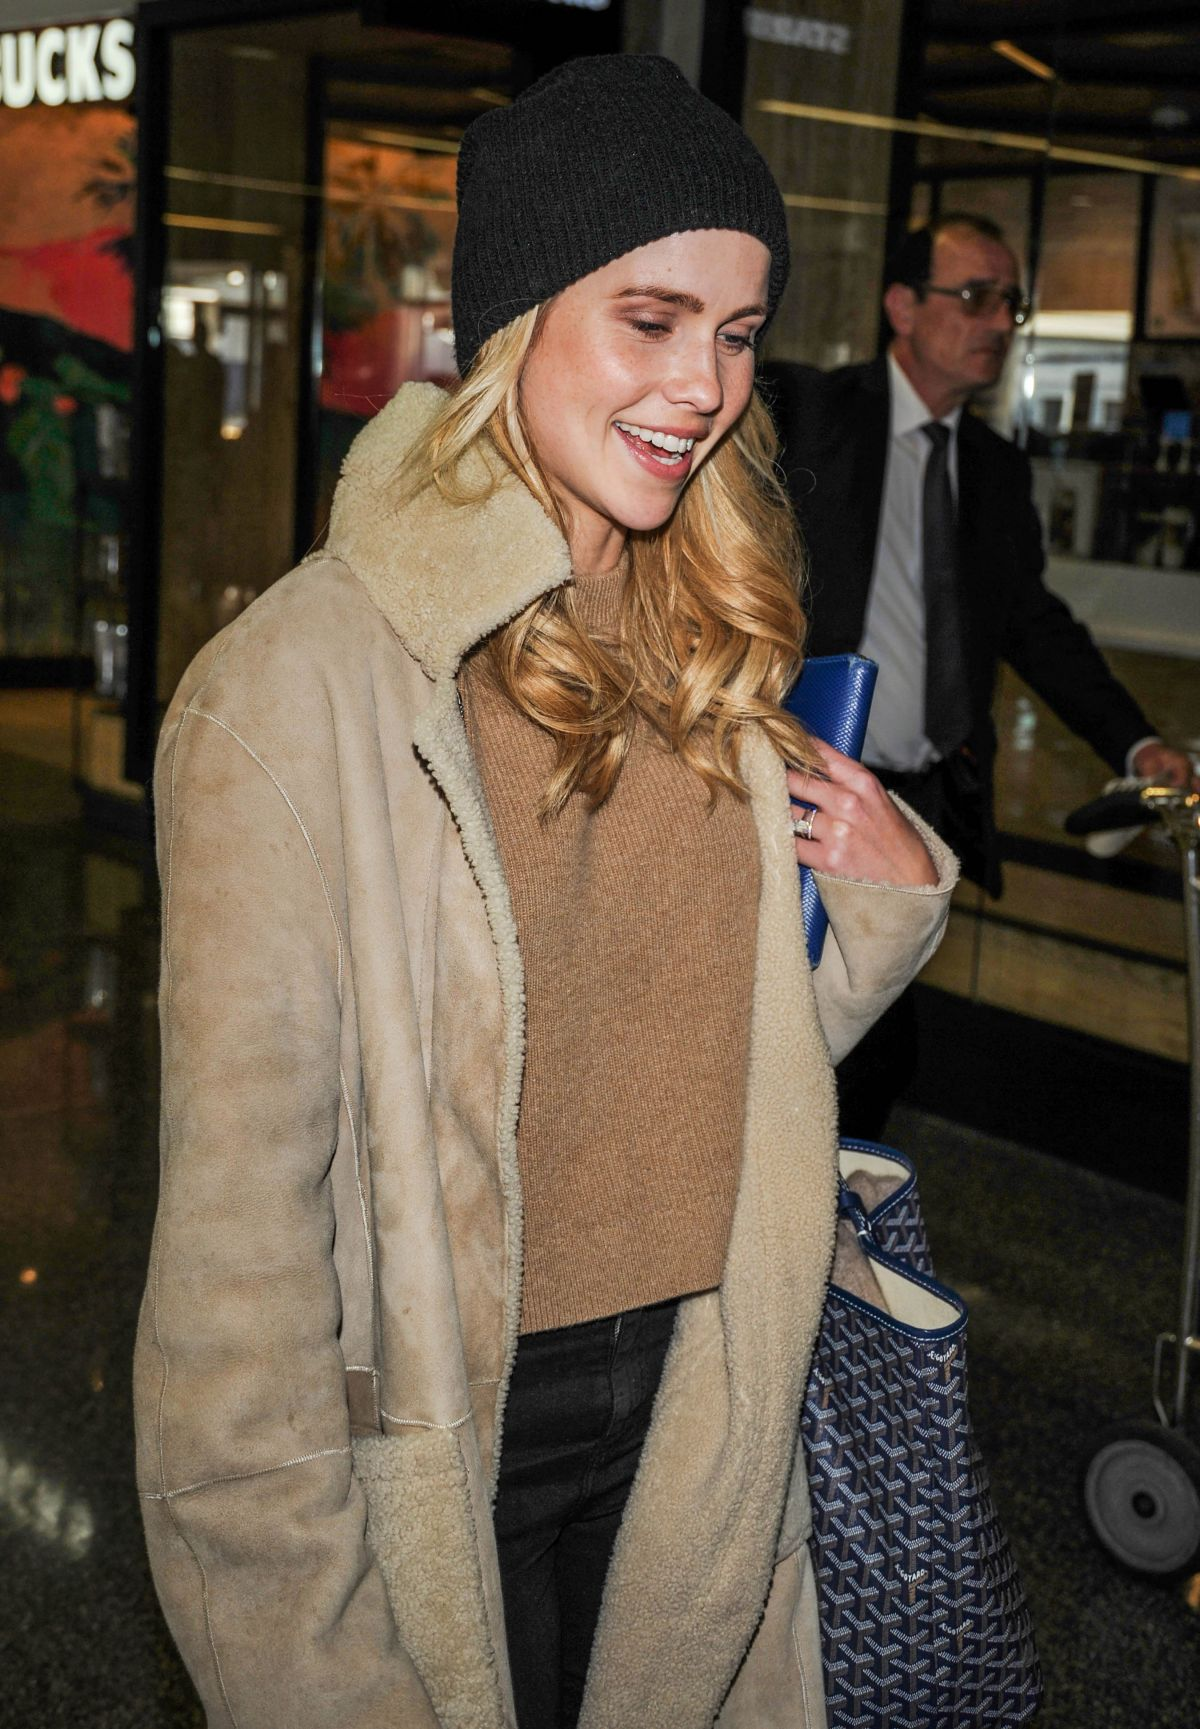 CLAIRE HOLT at LAX Airport in Los Angeles 04/04/2017